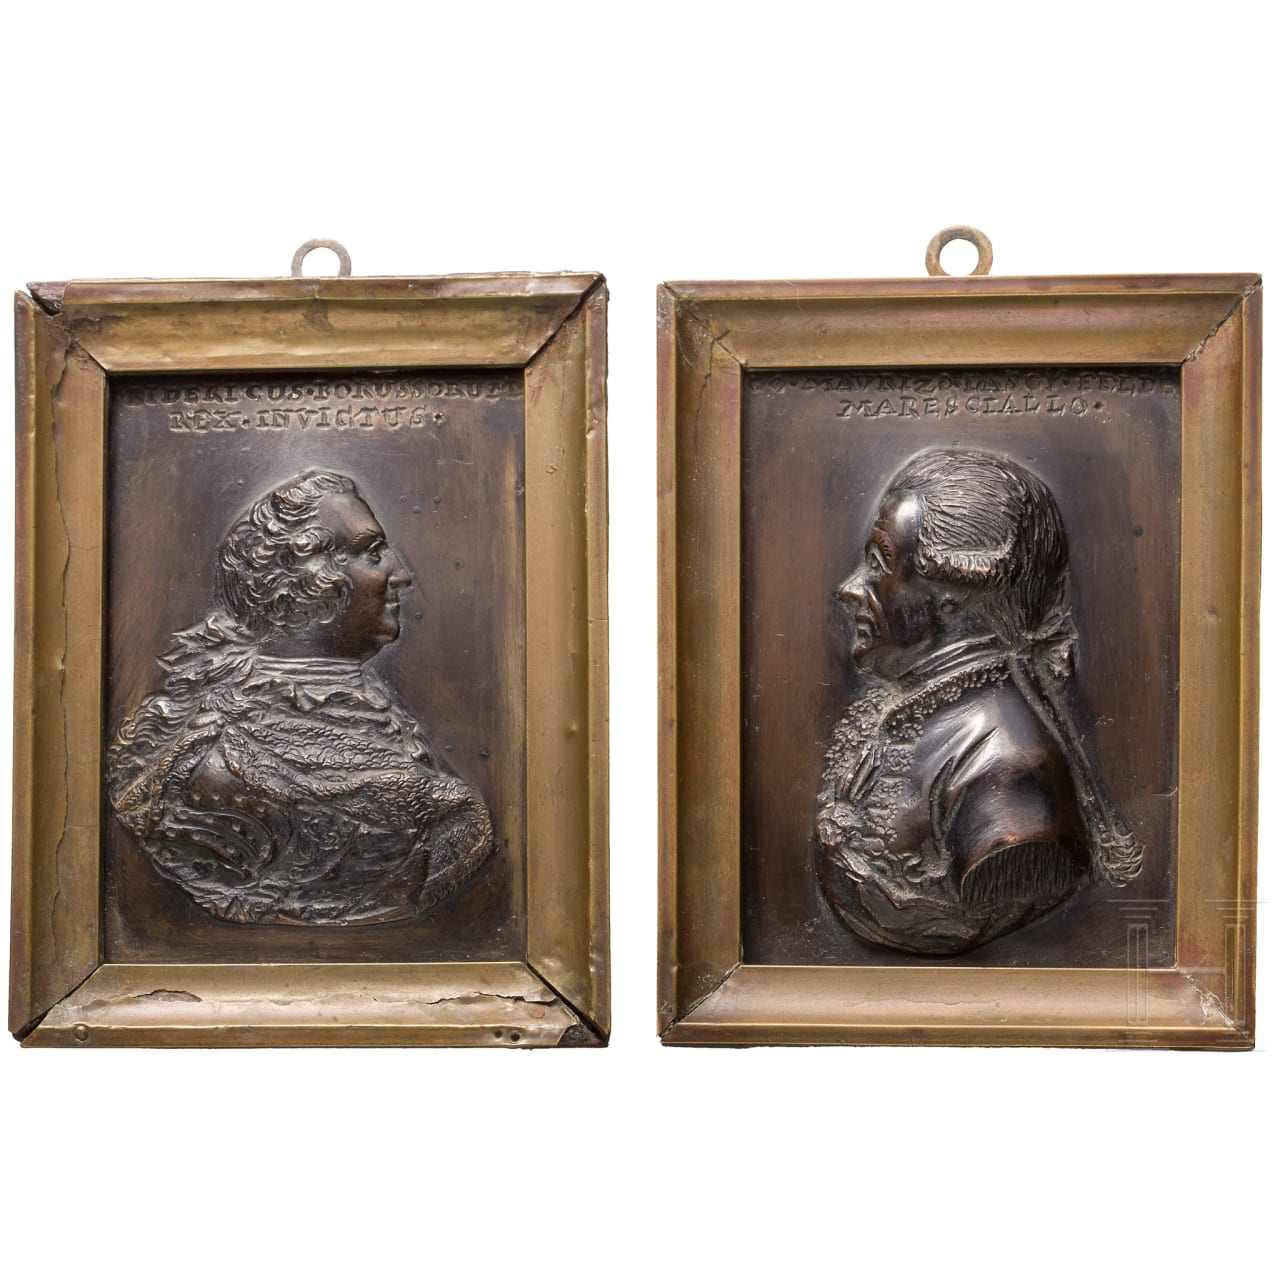 A pair of bronze plaques showing Frederic II of Prussia and Moritz Count of Lacy, ca. 1770